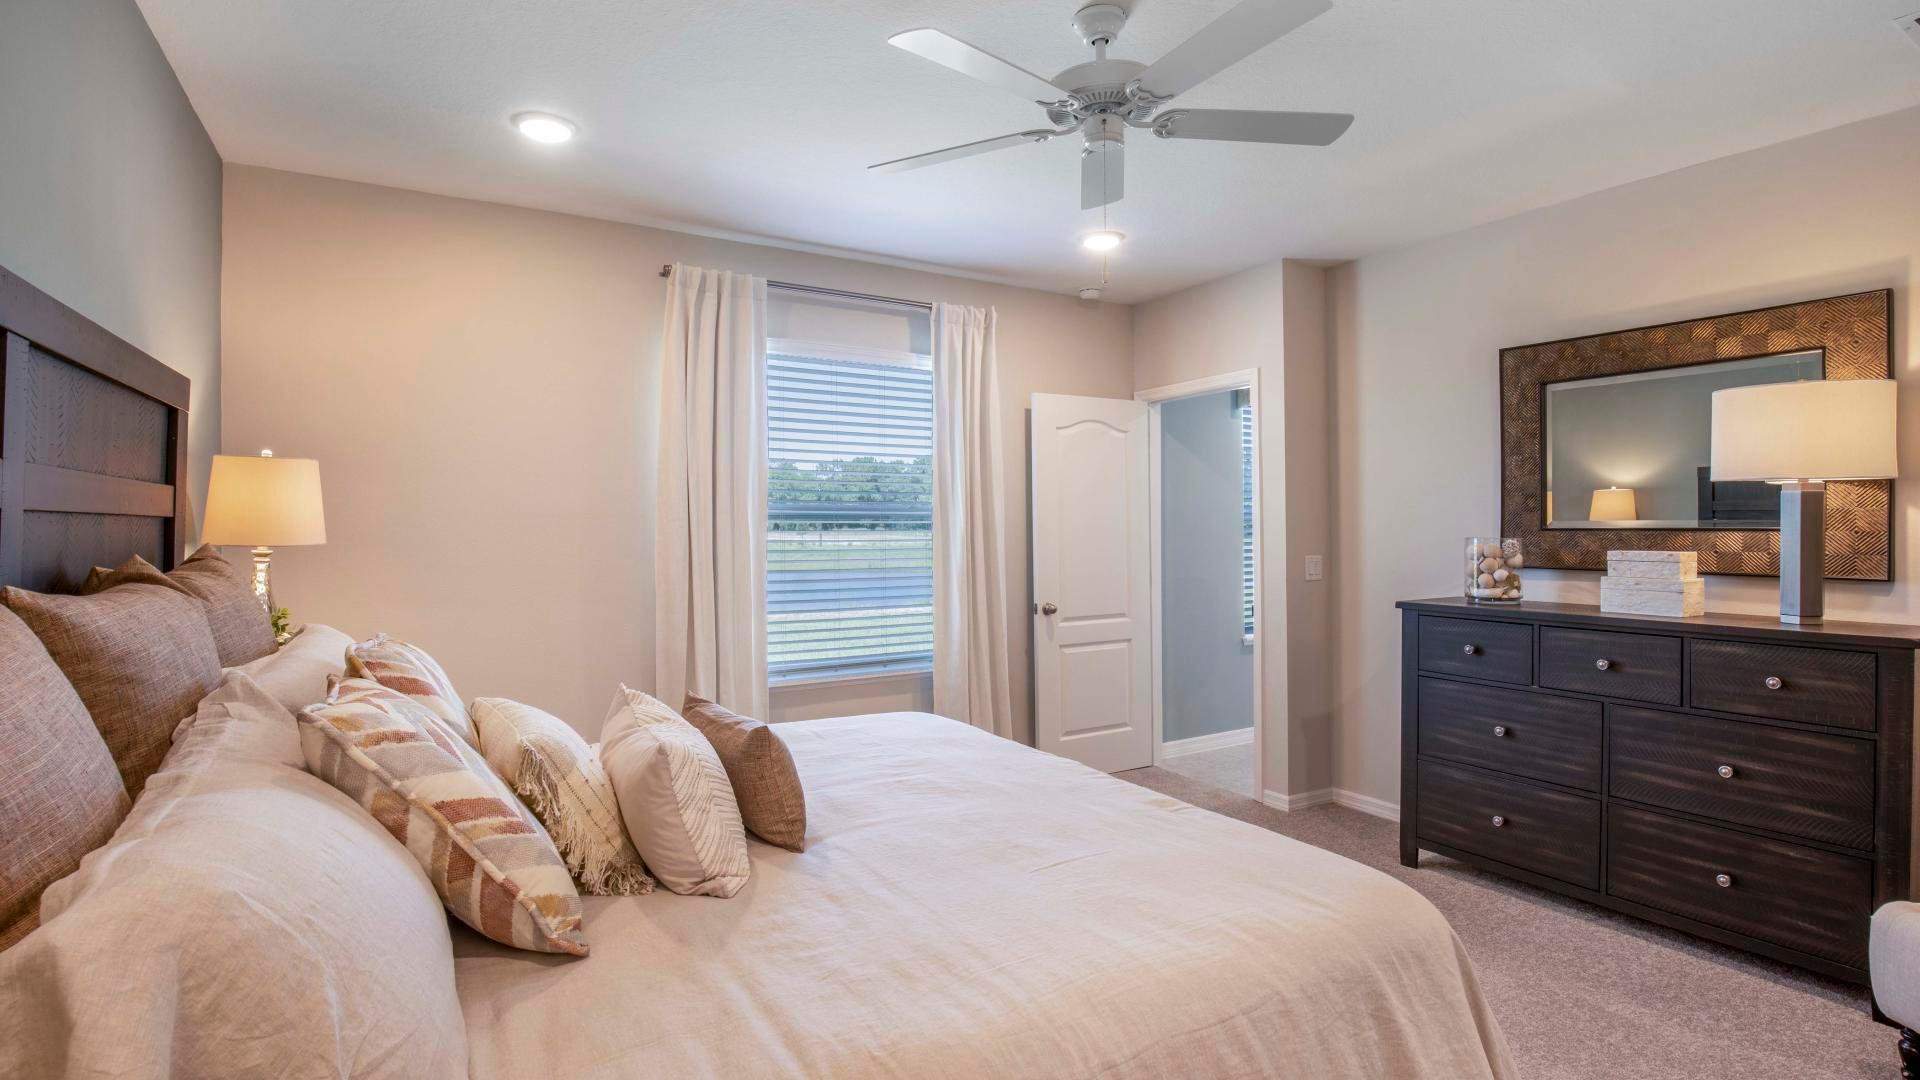 Bedroom featured in the Victoria By Maronda Homes in Daytona Beach, FL